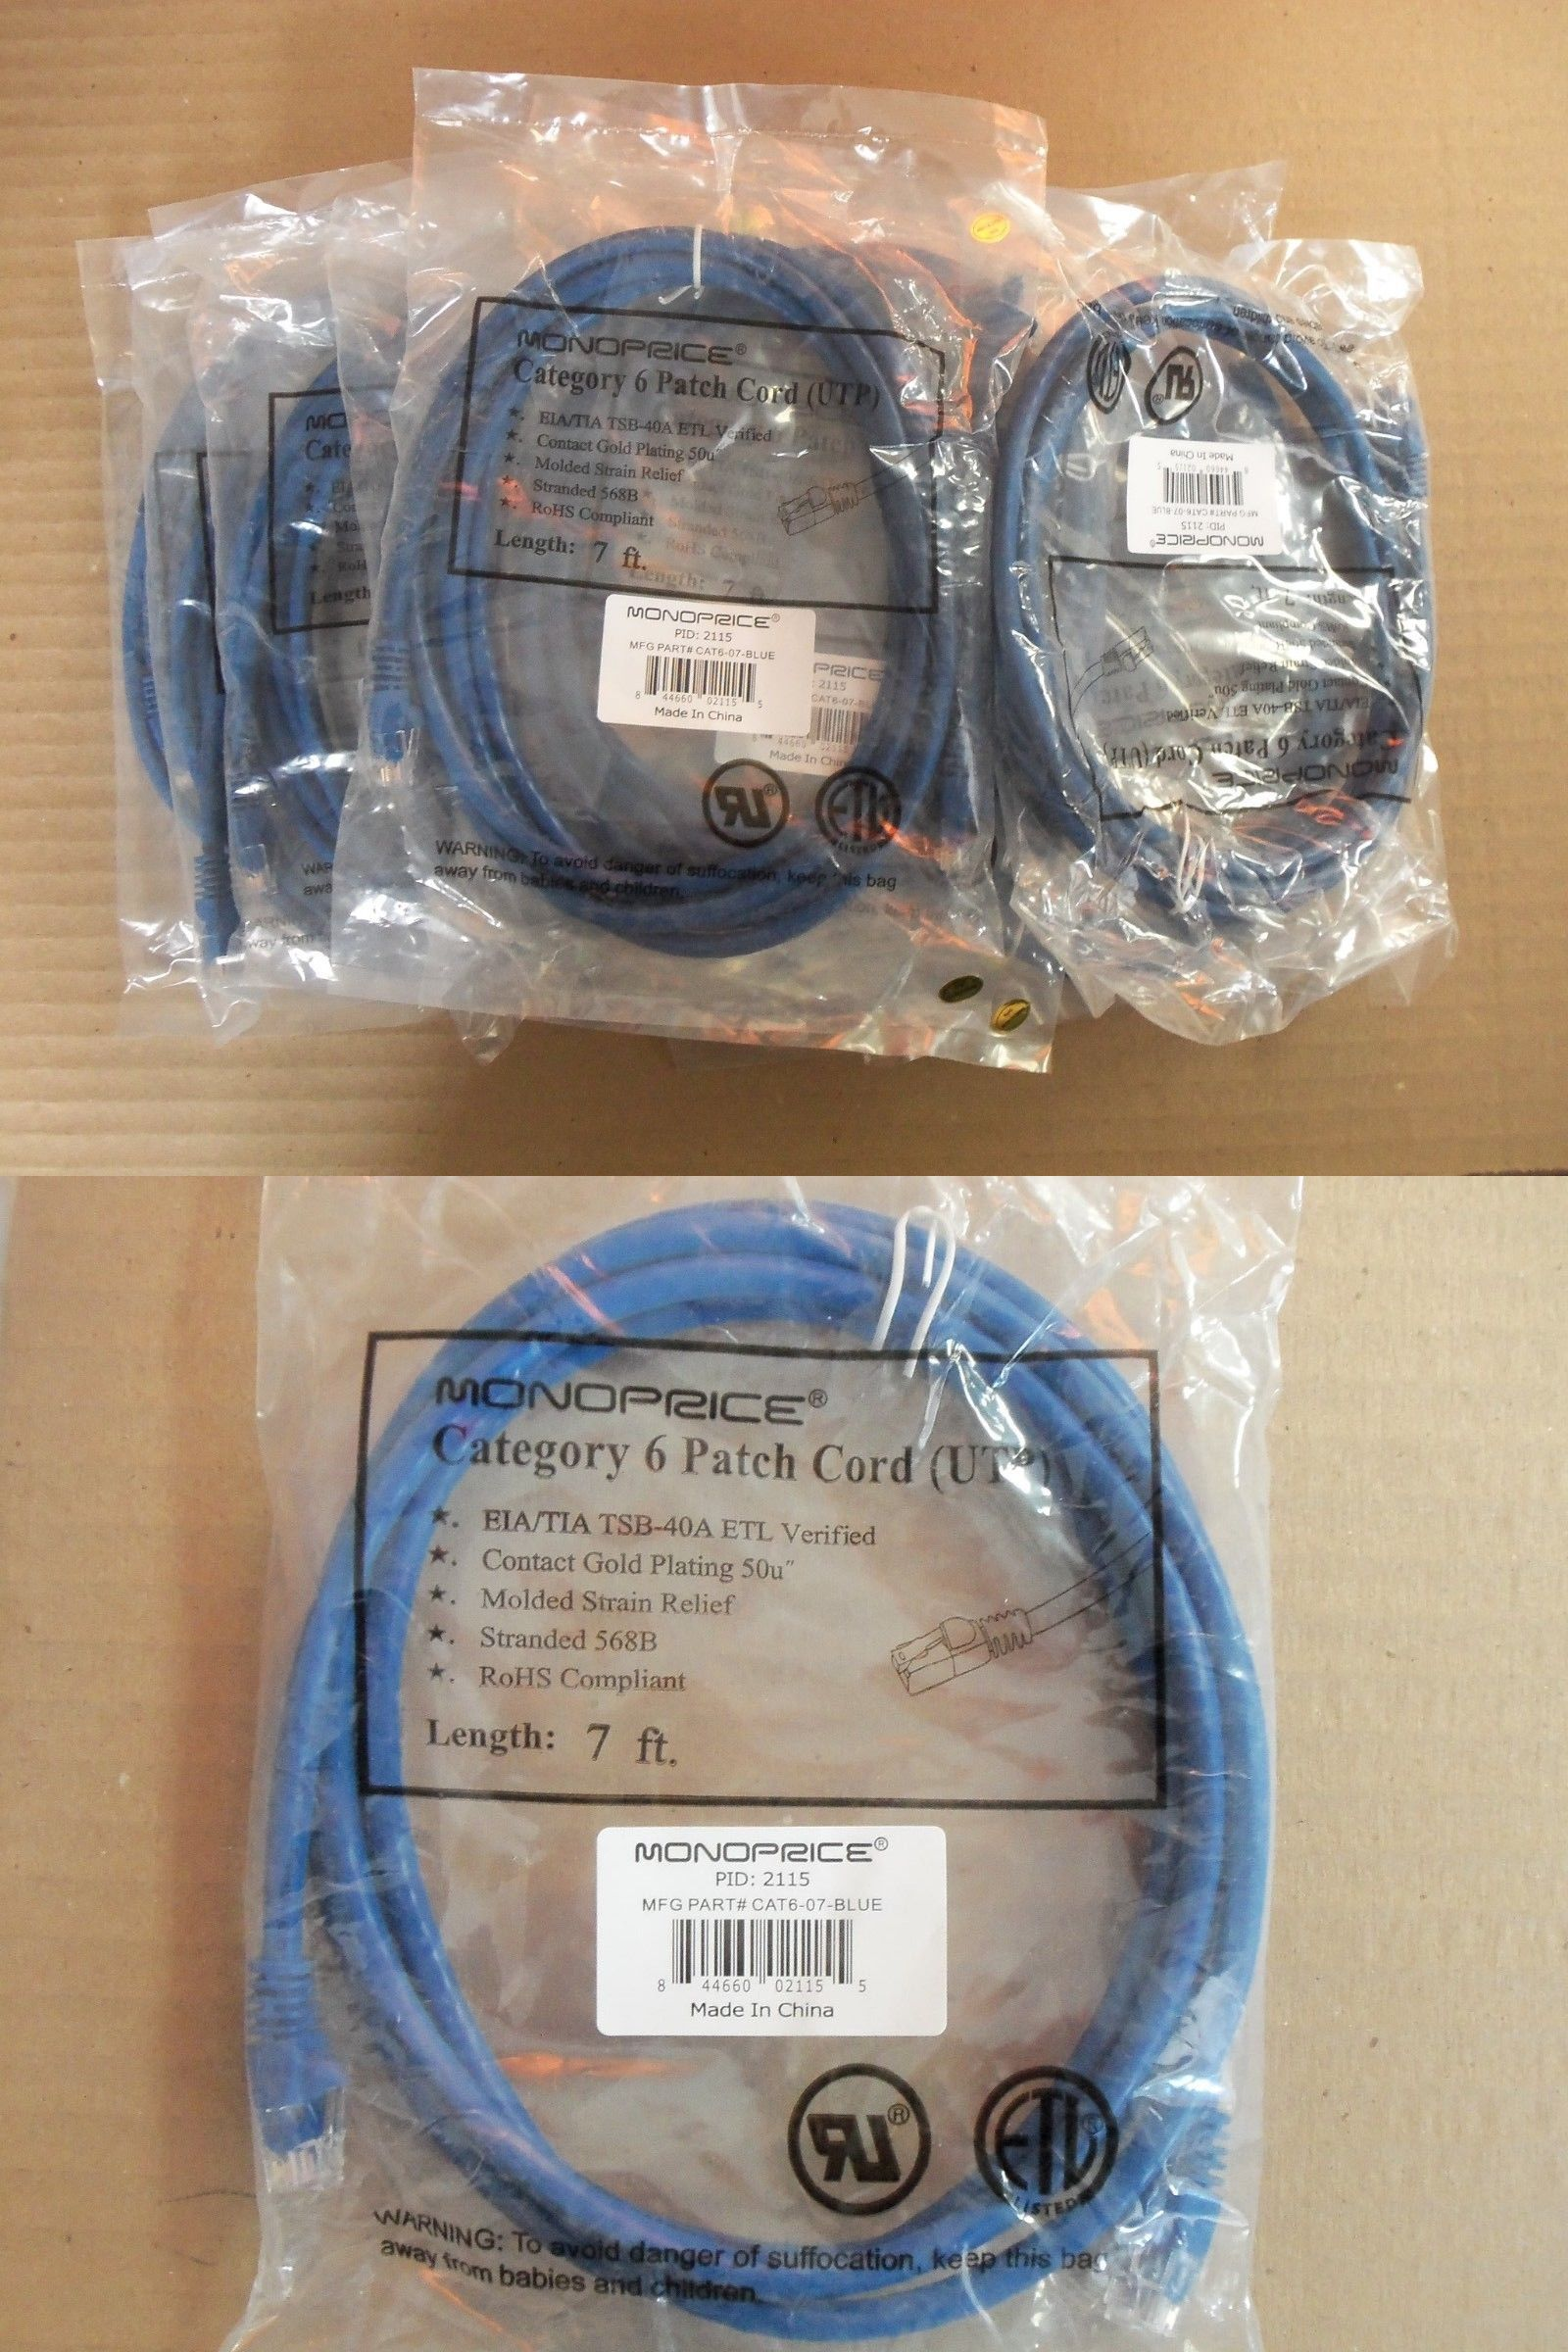 Dsl Phone Cables Rj 11 67857 New Lot Of 55 Monoprice Category 6 Patch Cord Utp Cat6 07 Blue 7ft Buy It Now Only 125 On Patch Cord Monoprice Phone Cables